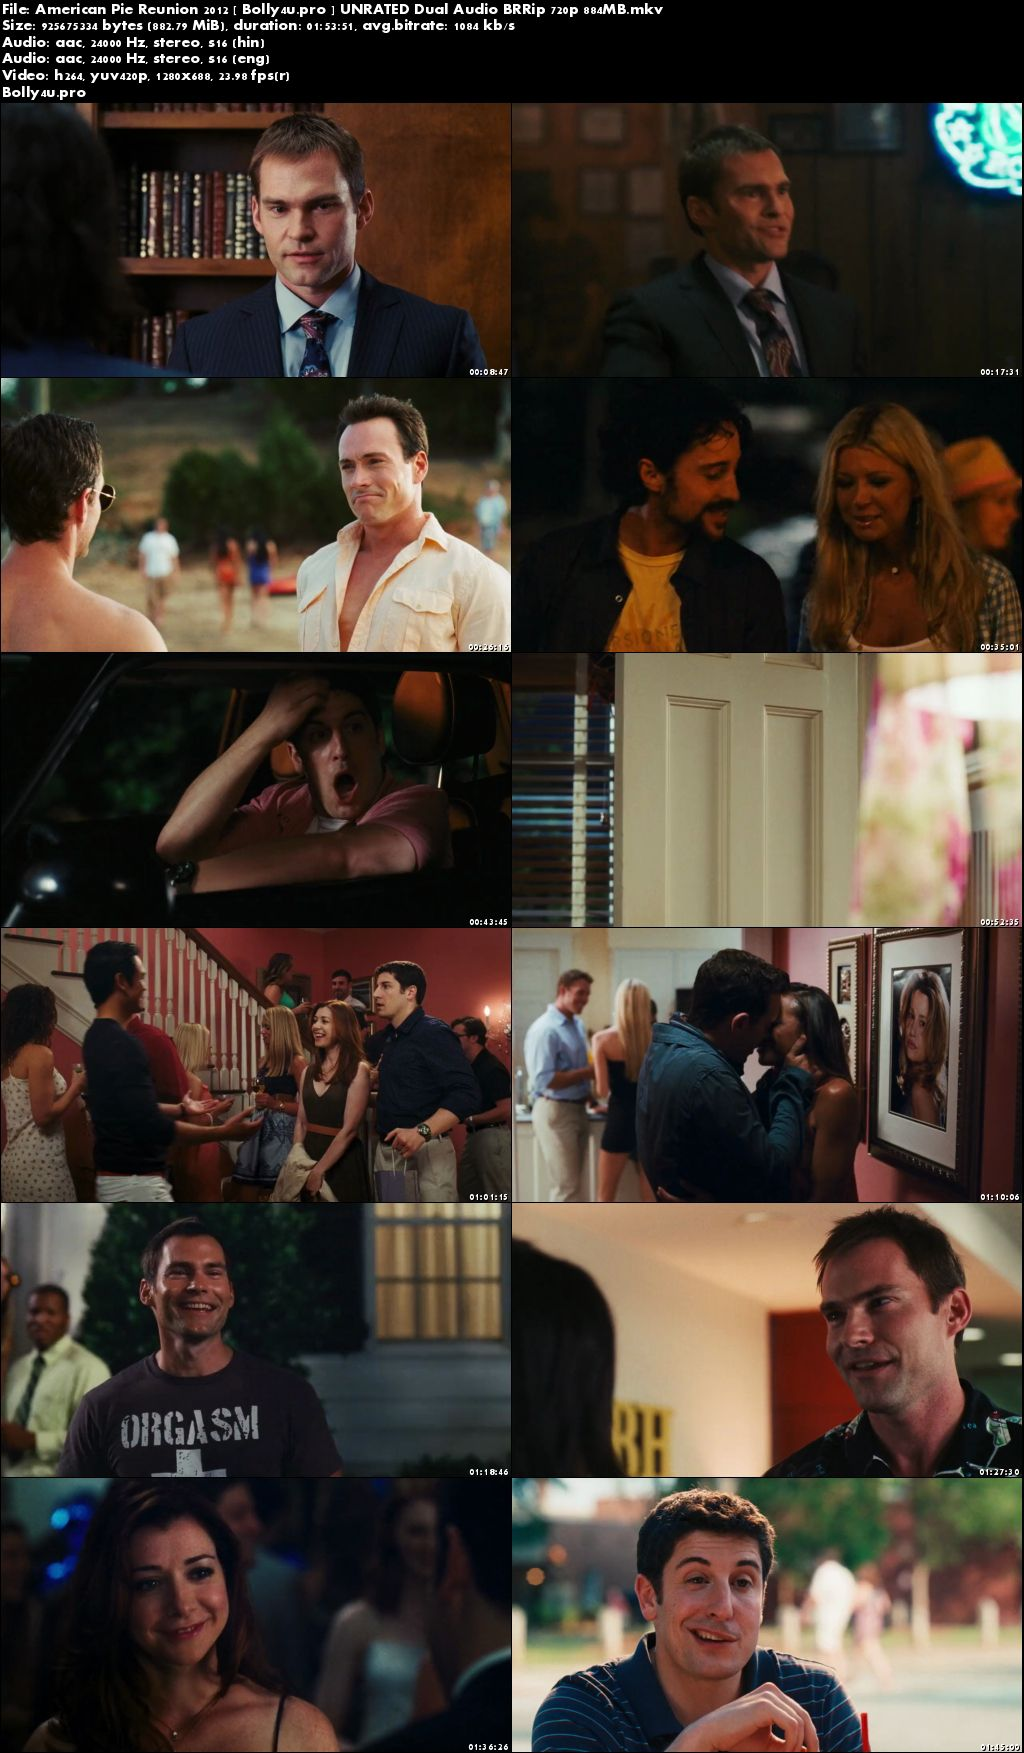 American Pie Reunion 2012 BluRay 850MB UNRATED Hindi Dual Audio 720p Download